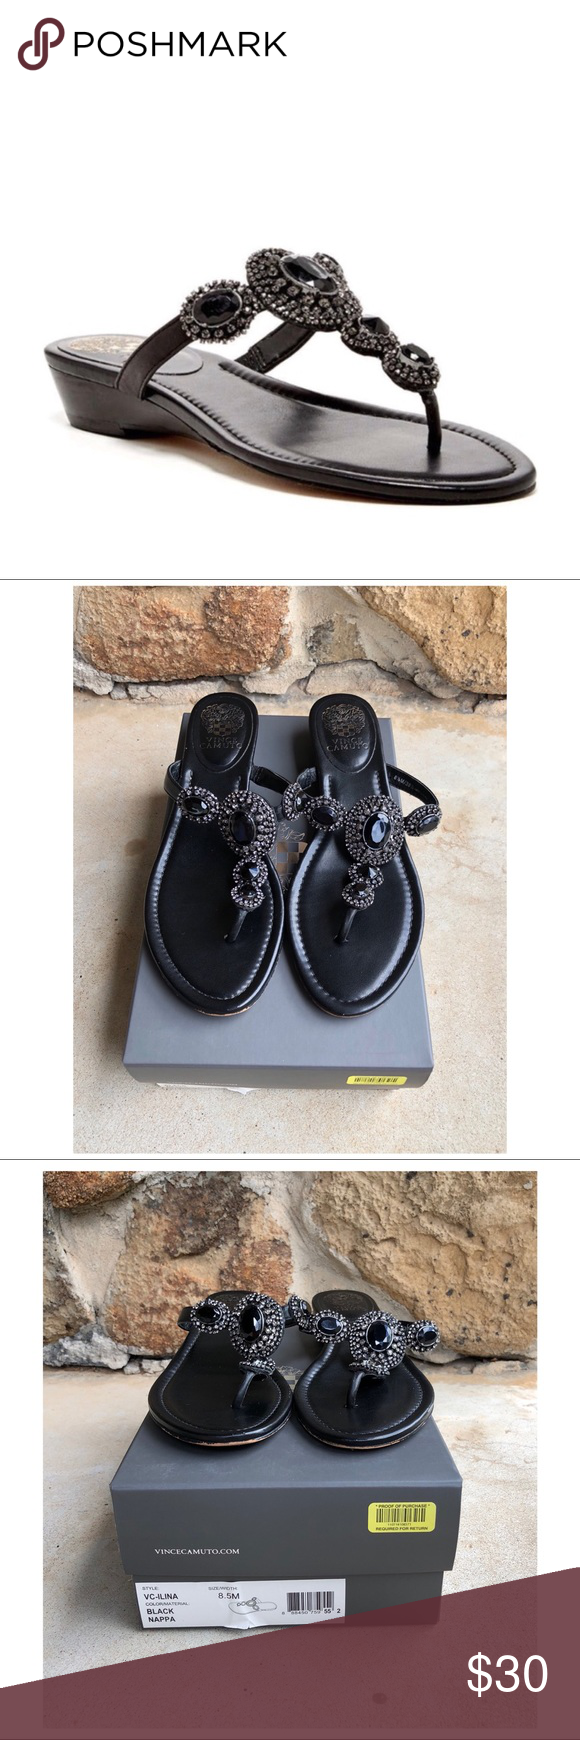 fcdafed82a6e Vince Camuto Ilina Wedge Sandals Napa Black 8.5M Product description Spend  your day in comfort